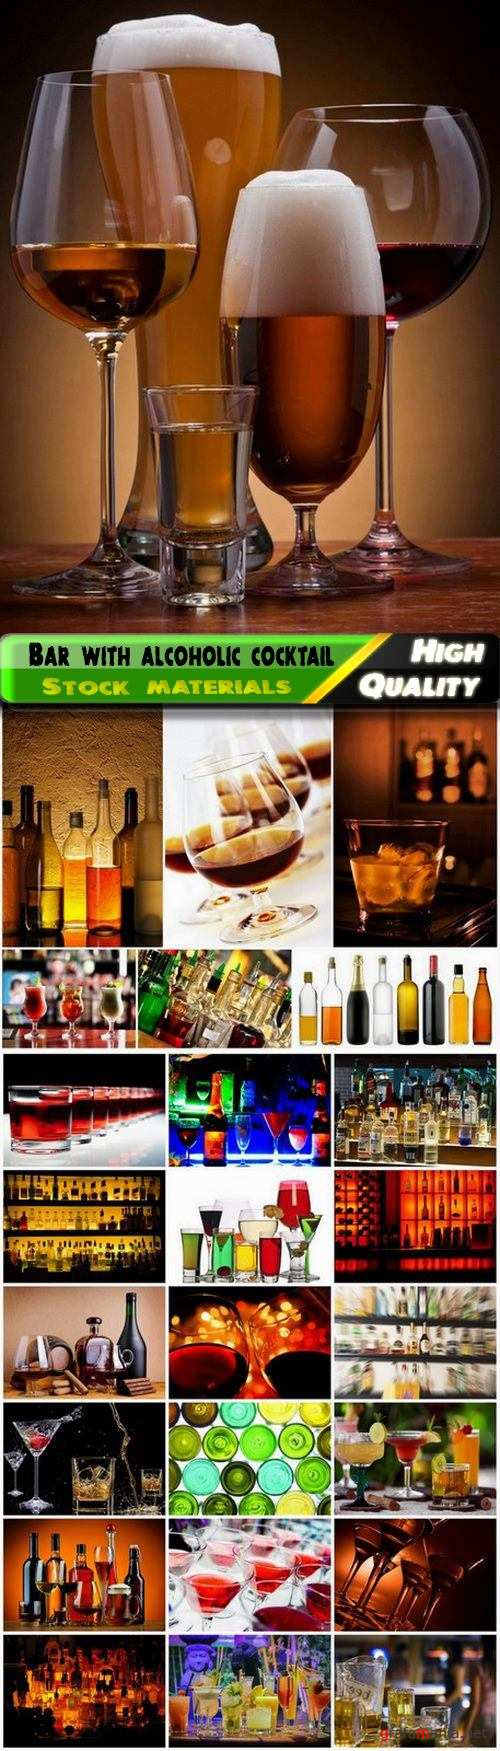 Bar with glass of alcoholic cocktail and bottle of drink - 25 HQ Jpg